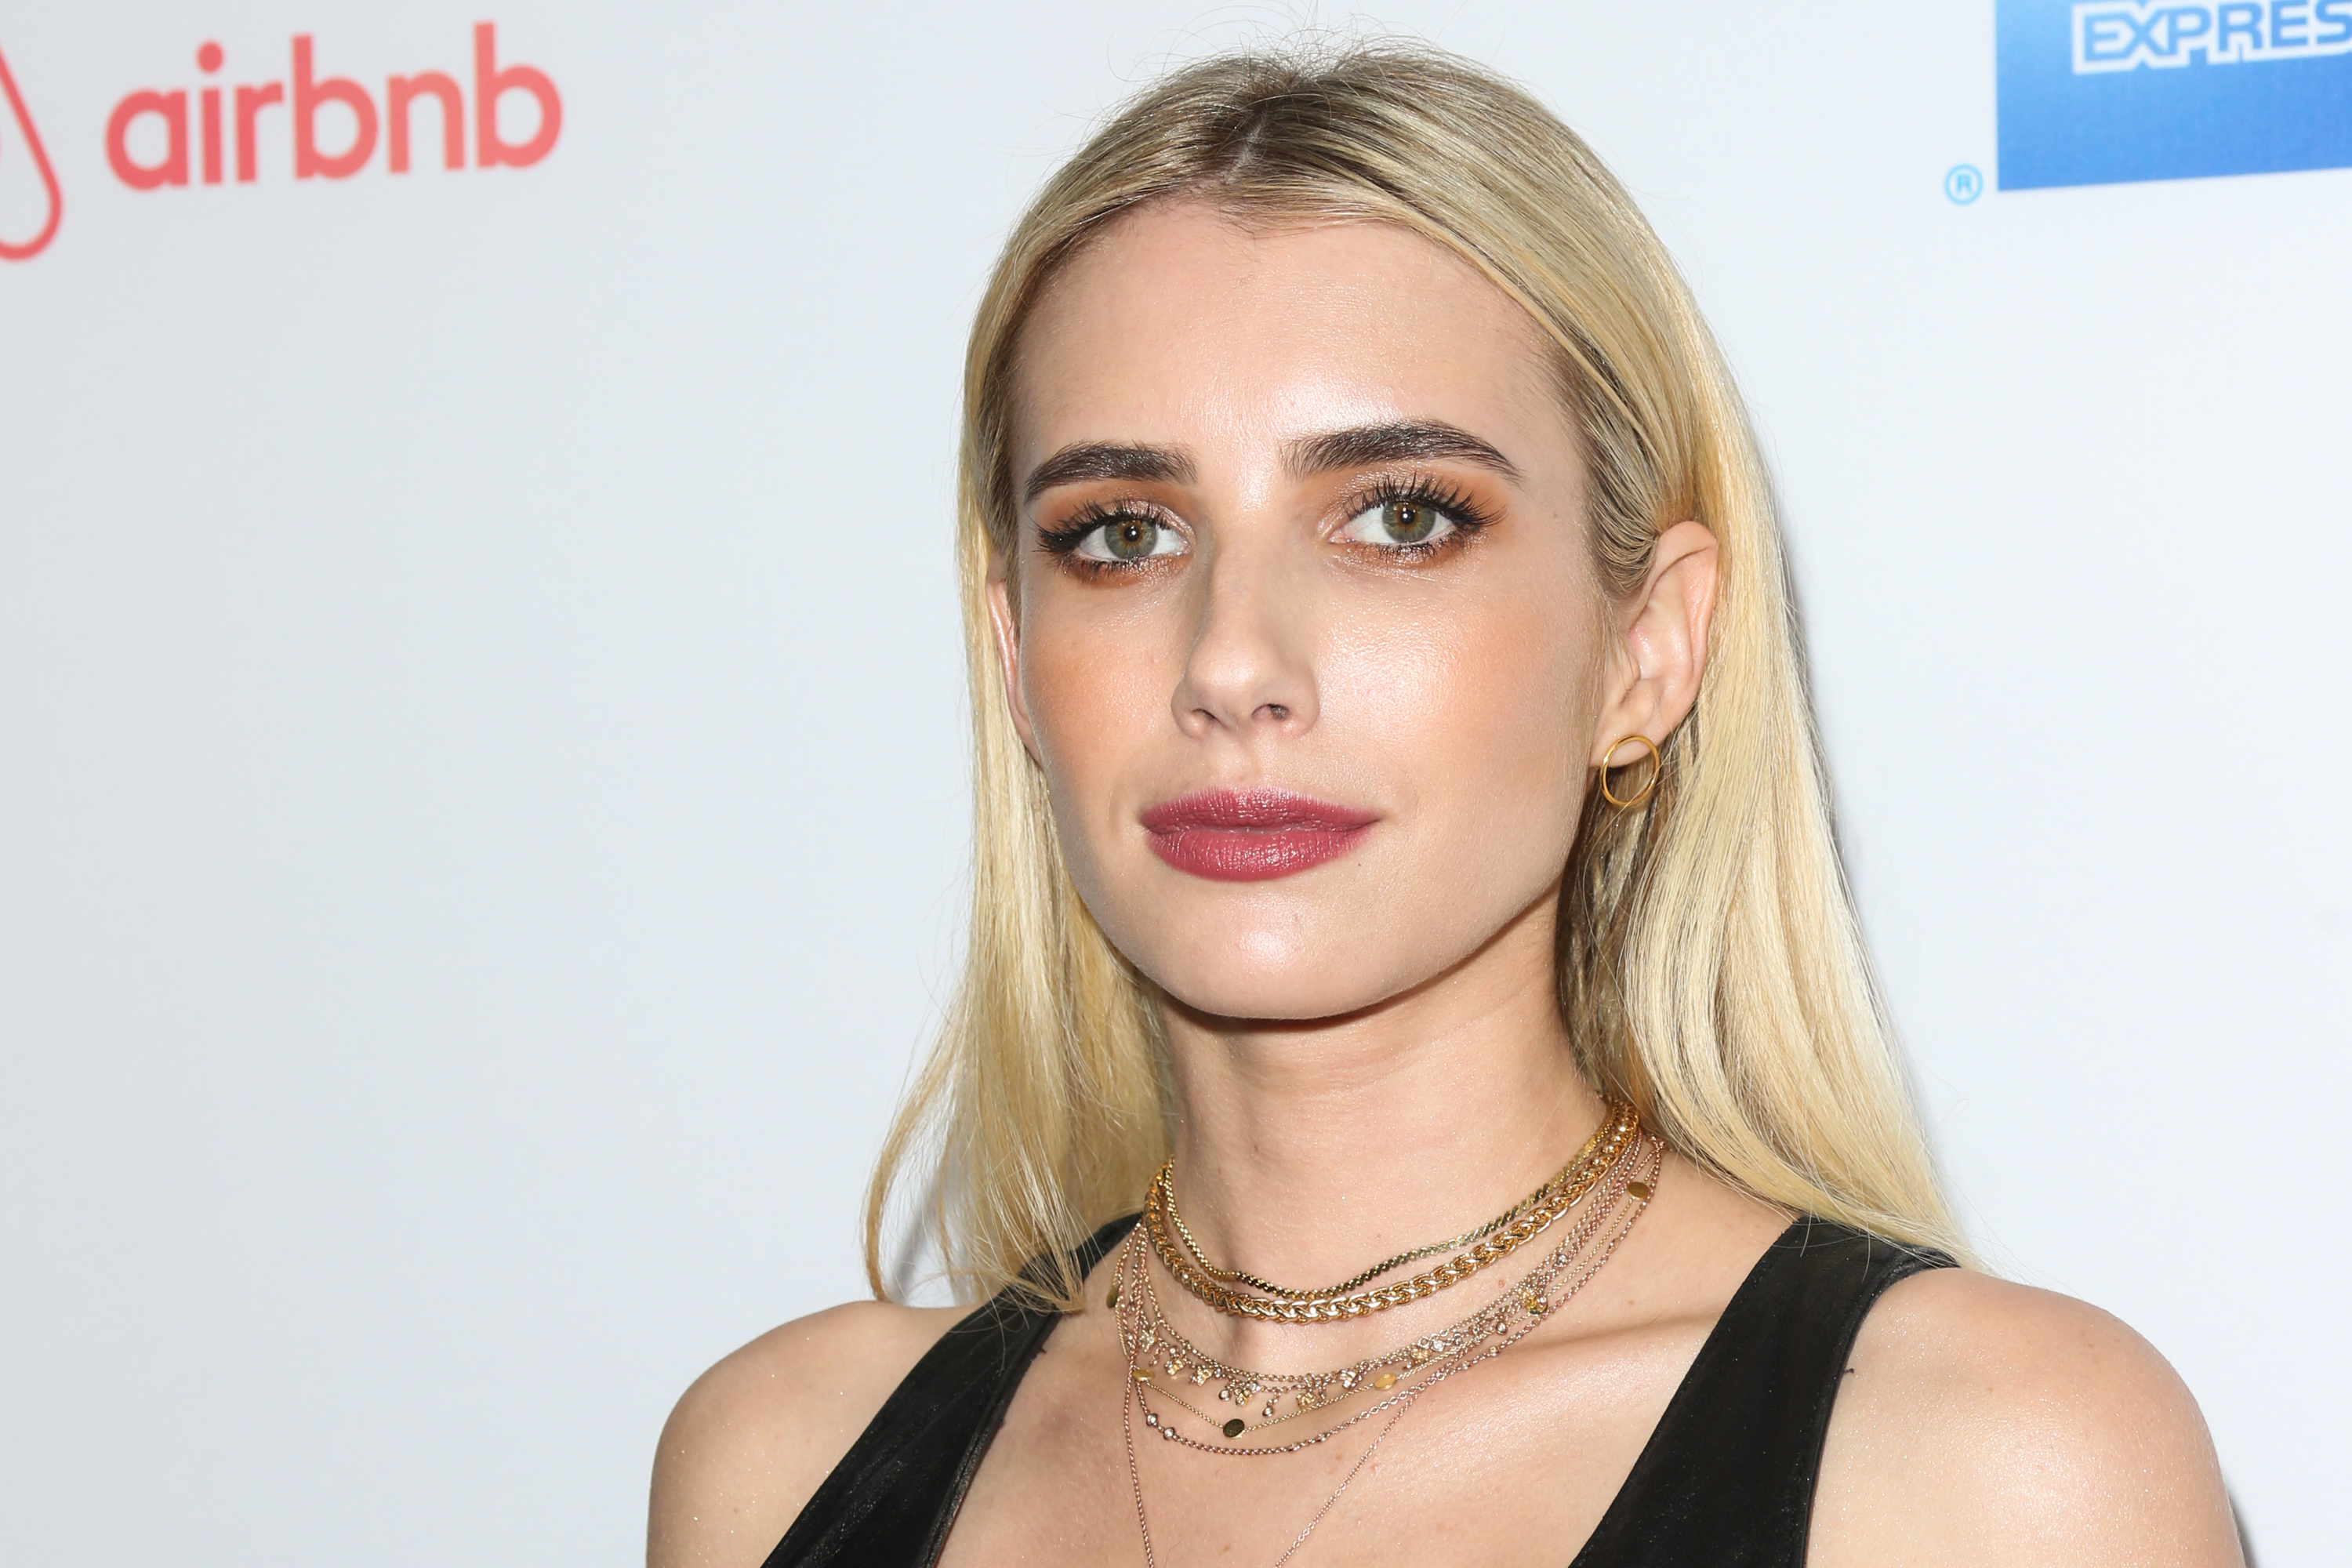 Emma Roberts looks like an '80s biker girl in her monogrammed leather jacket